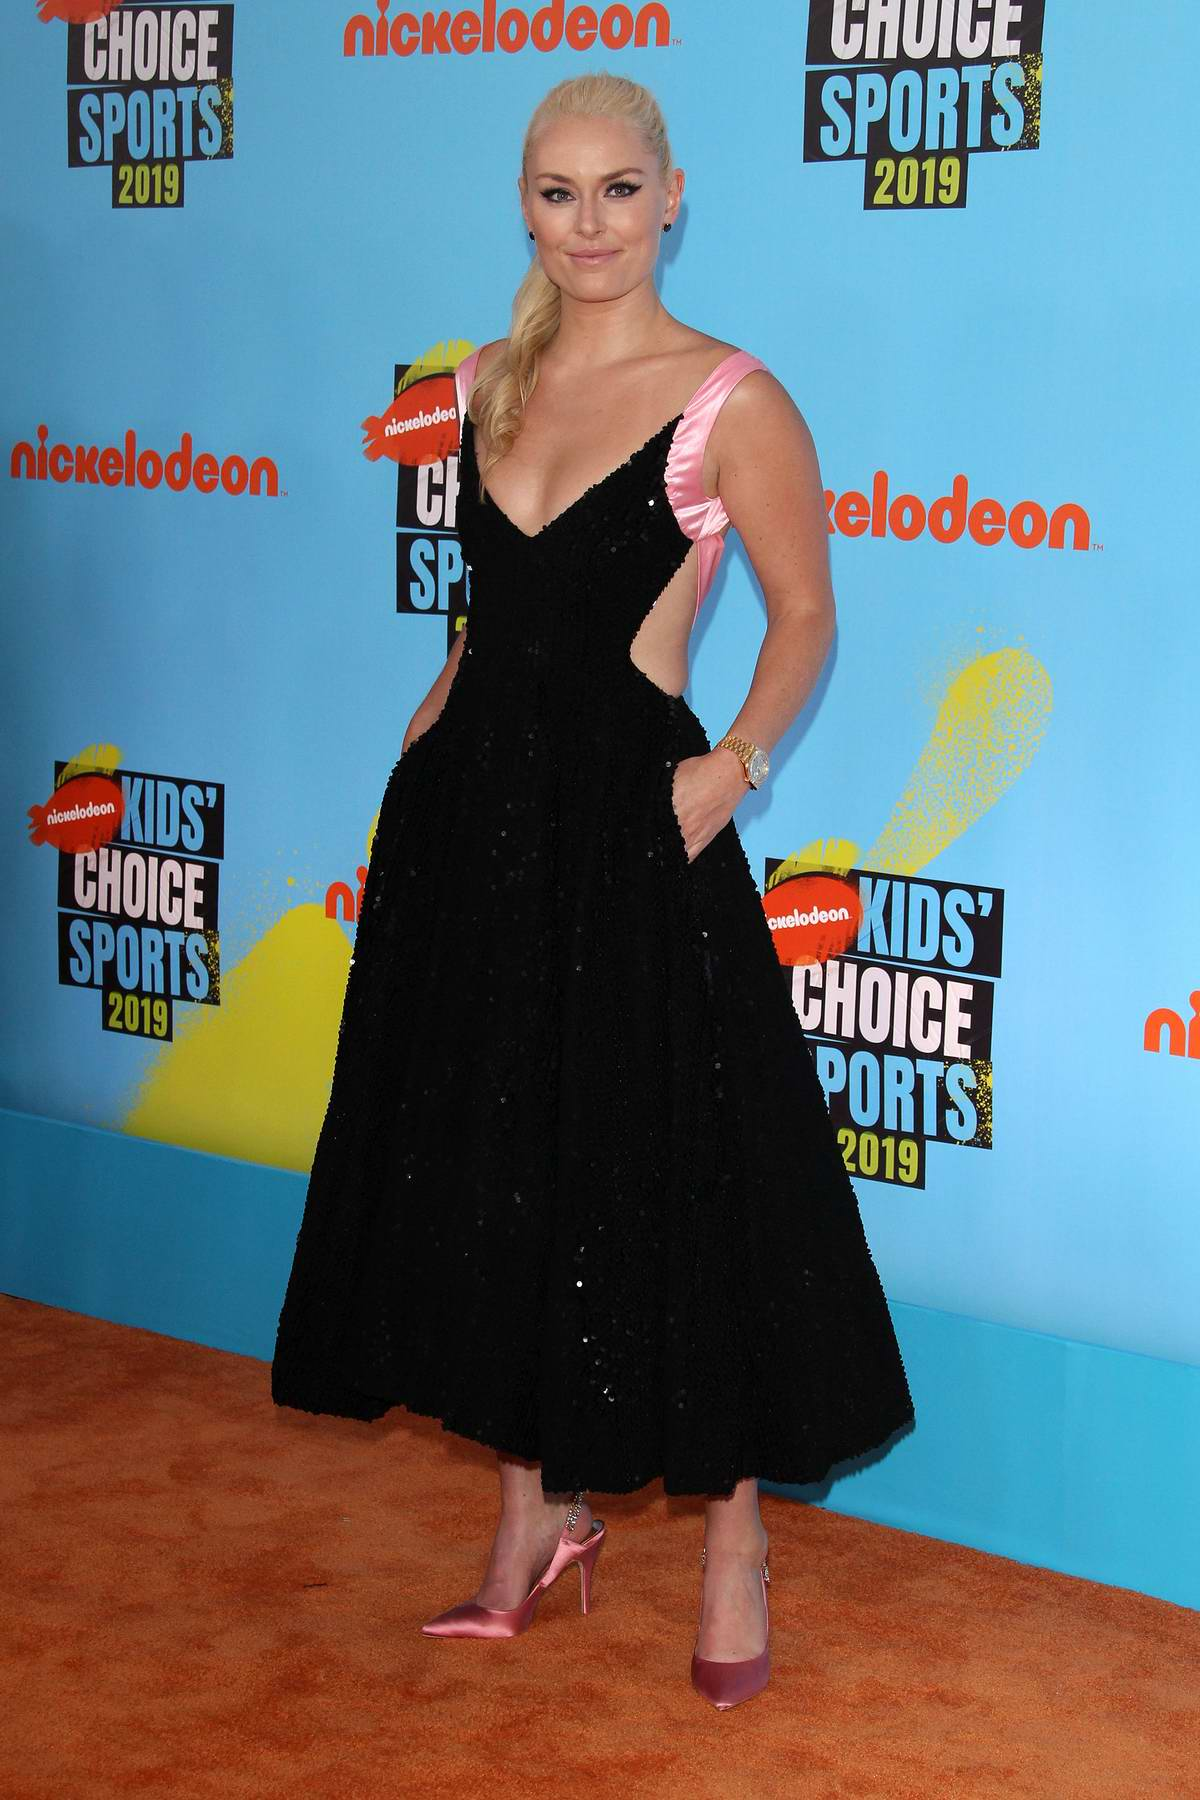 Lindsey Vonn attends the 2019 Nickelodeon Kids' Choice Sports Awards in Los Angeles